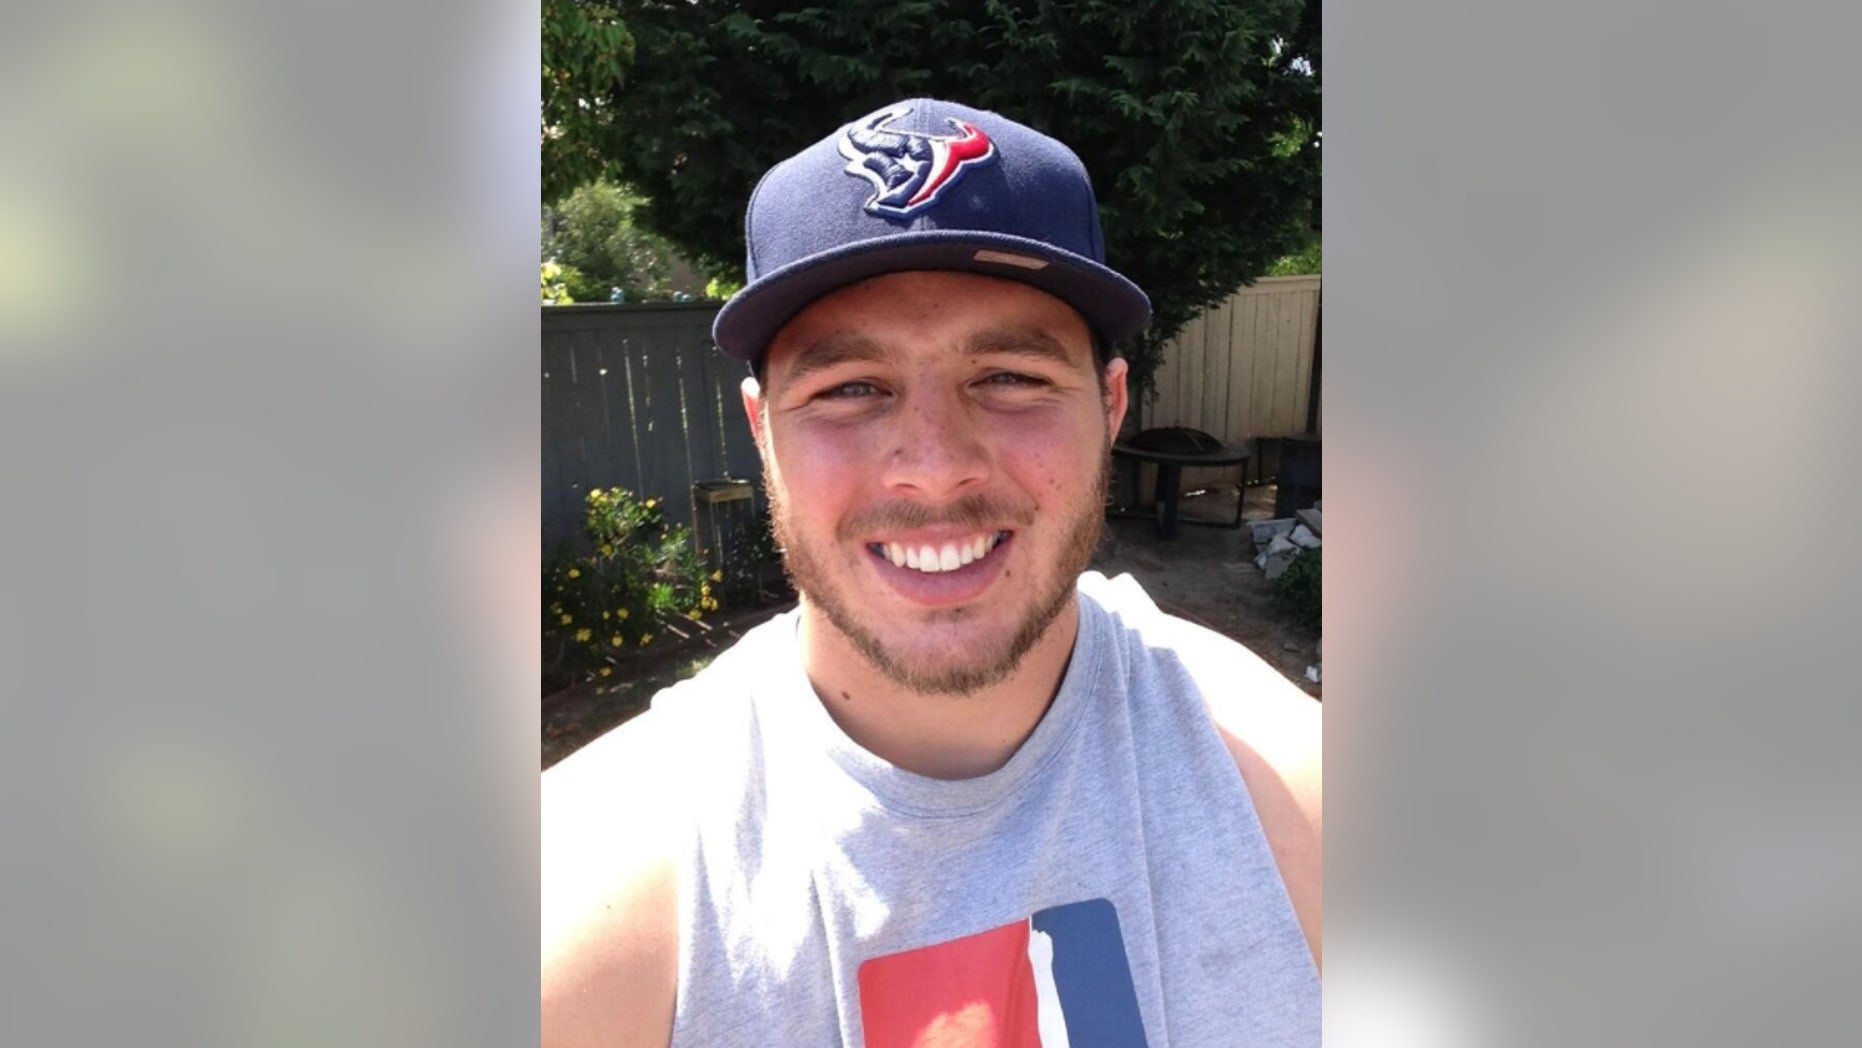 David Quessenberry joined the Texans for practice after completing nearly three years of cancer treatment.